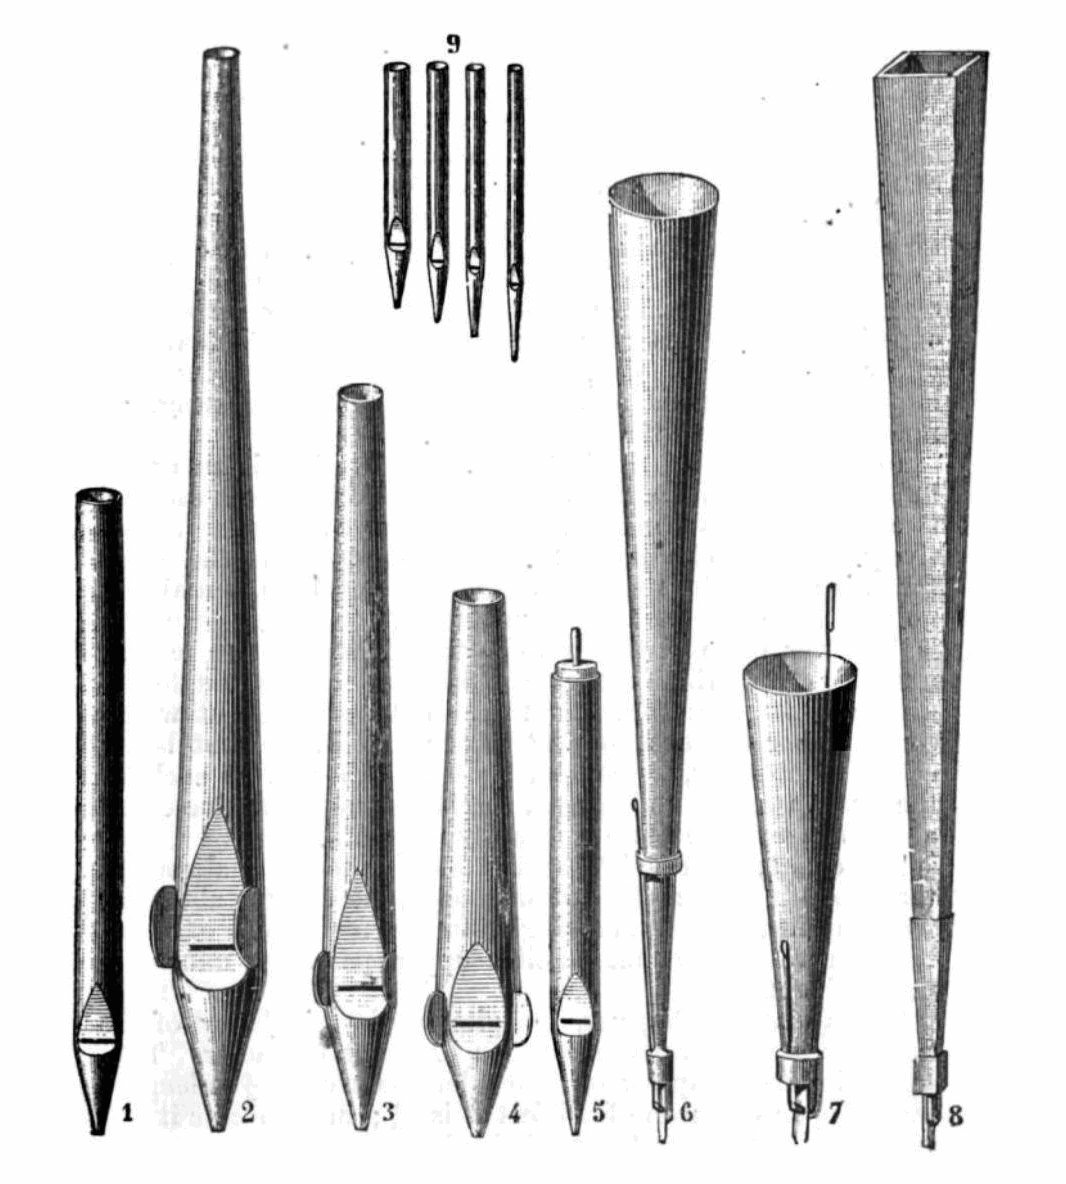 Organ Pipes Drawing File:organ Pipe Types.png